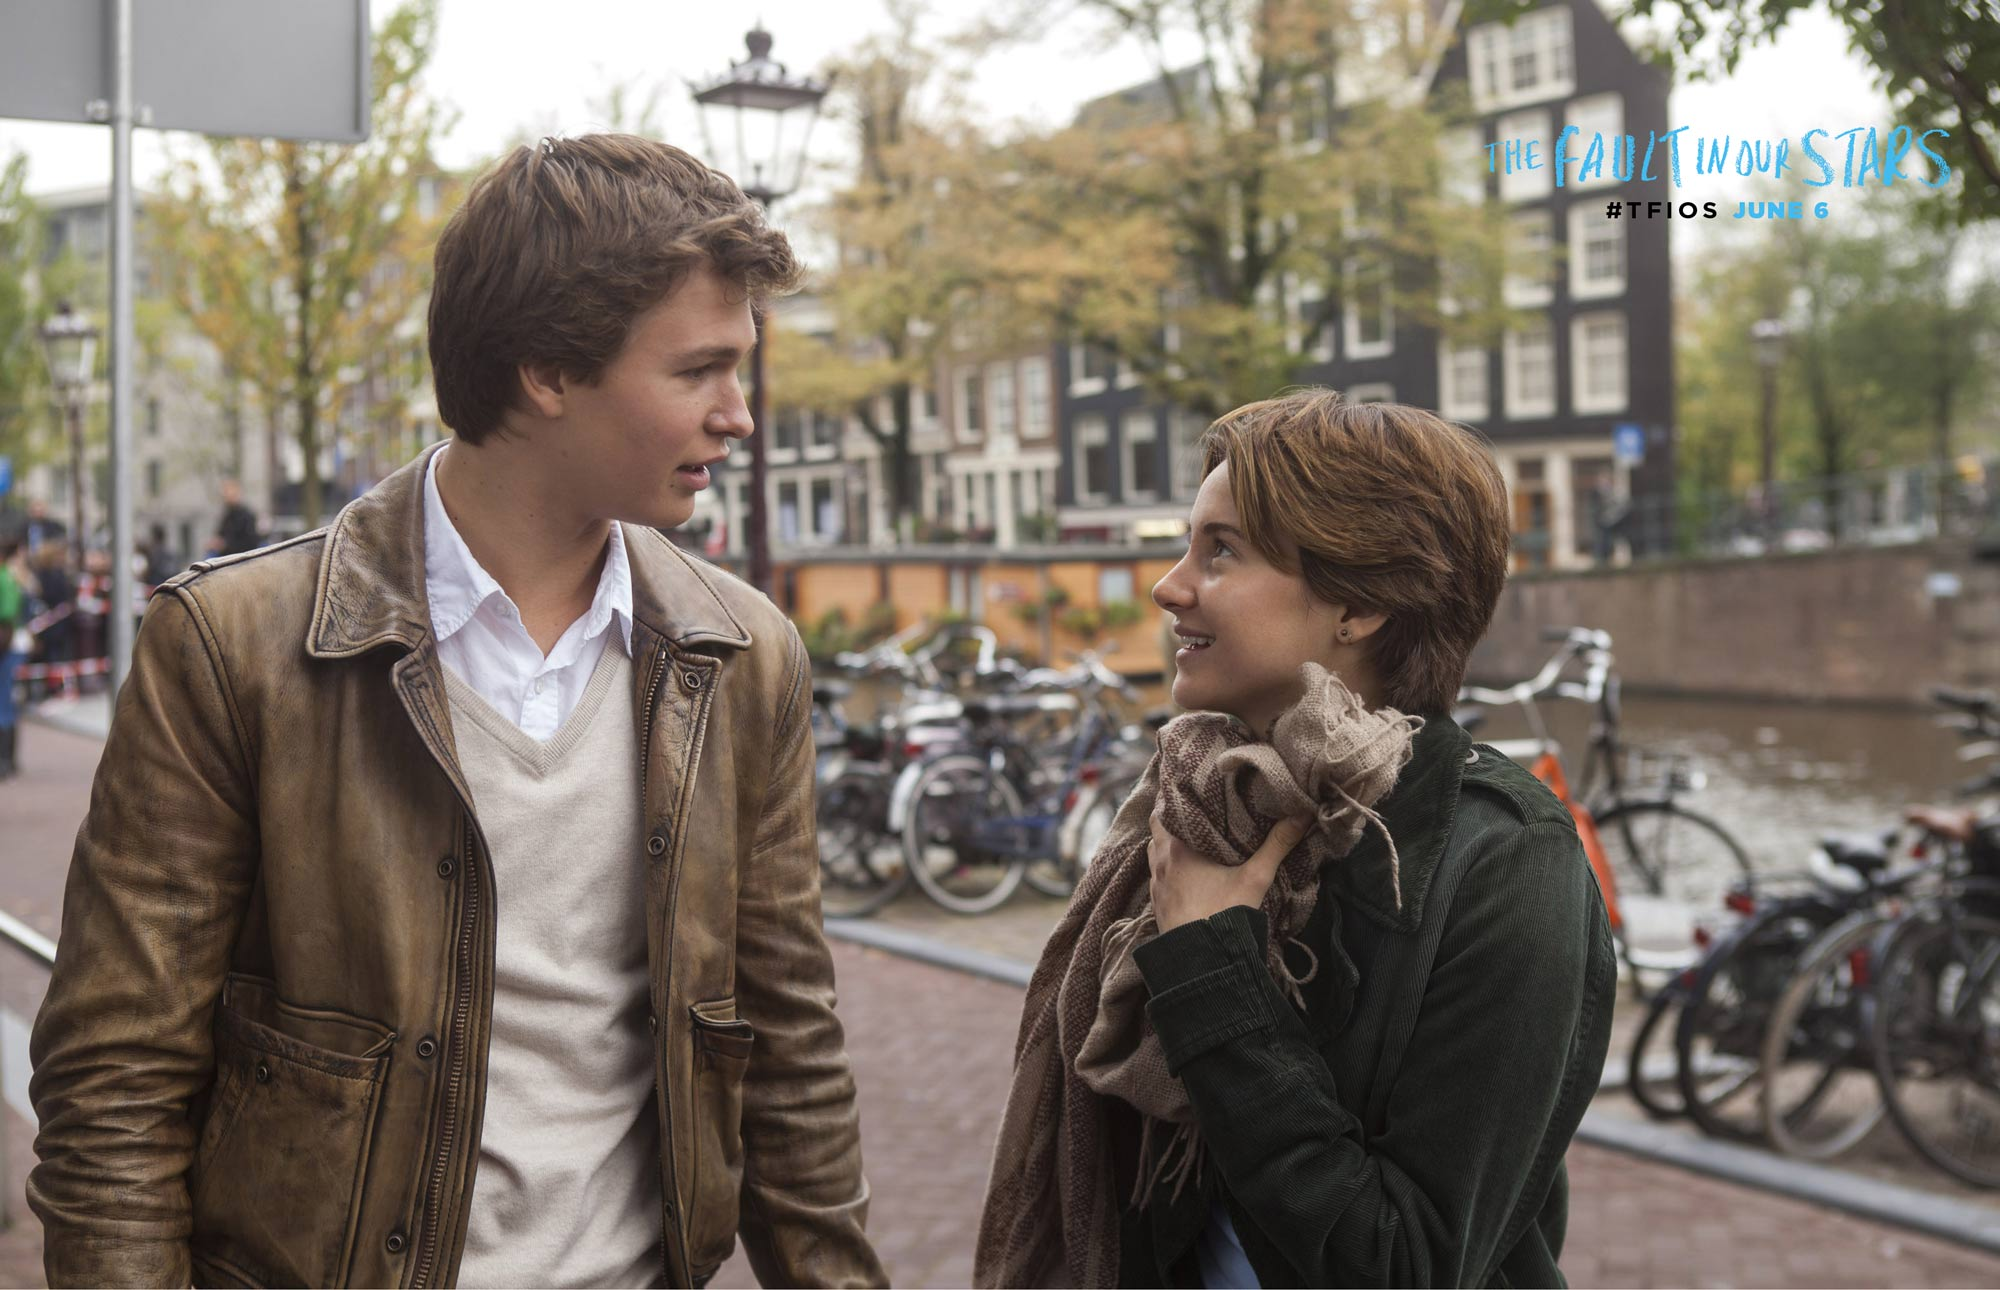 Review: The Fault In Our Stars